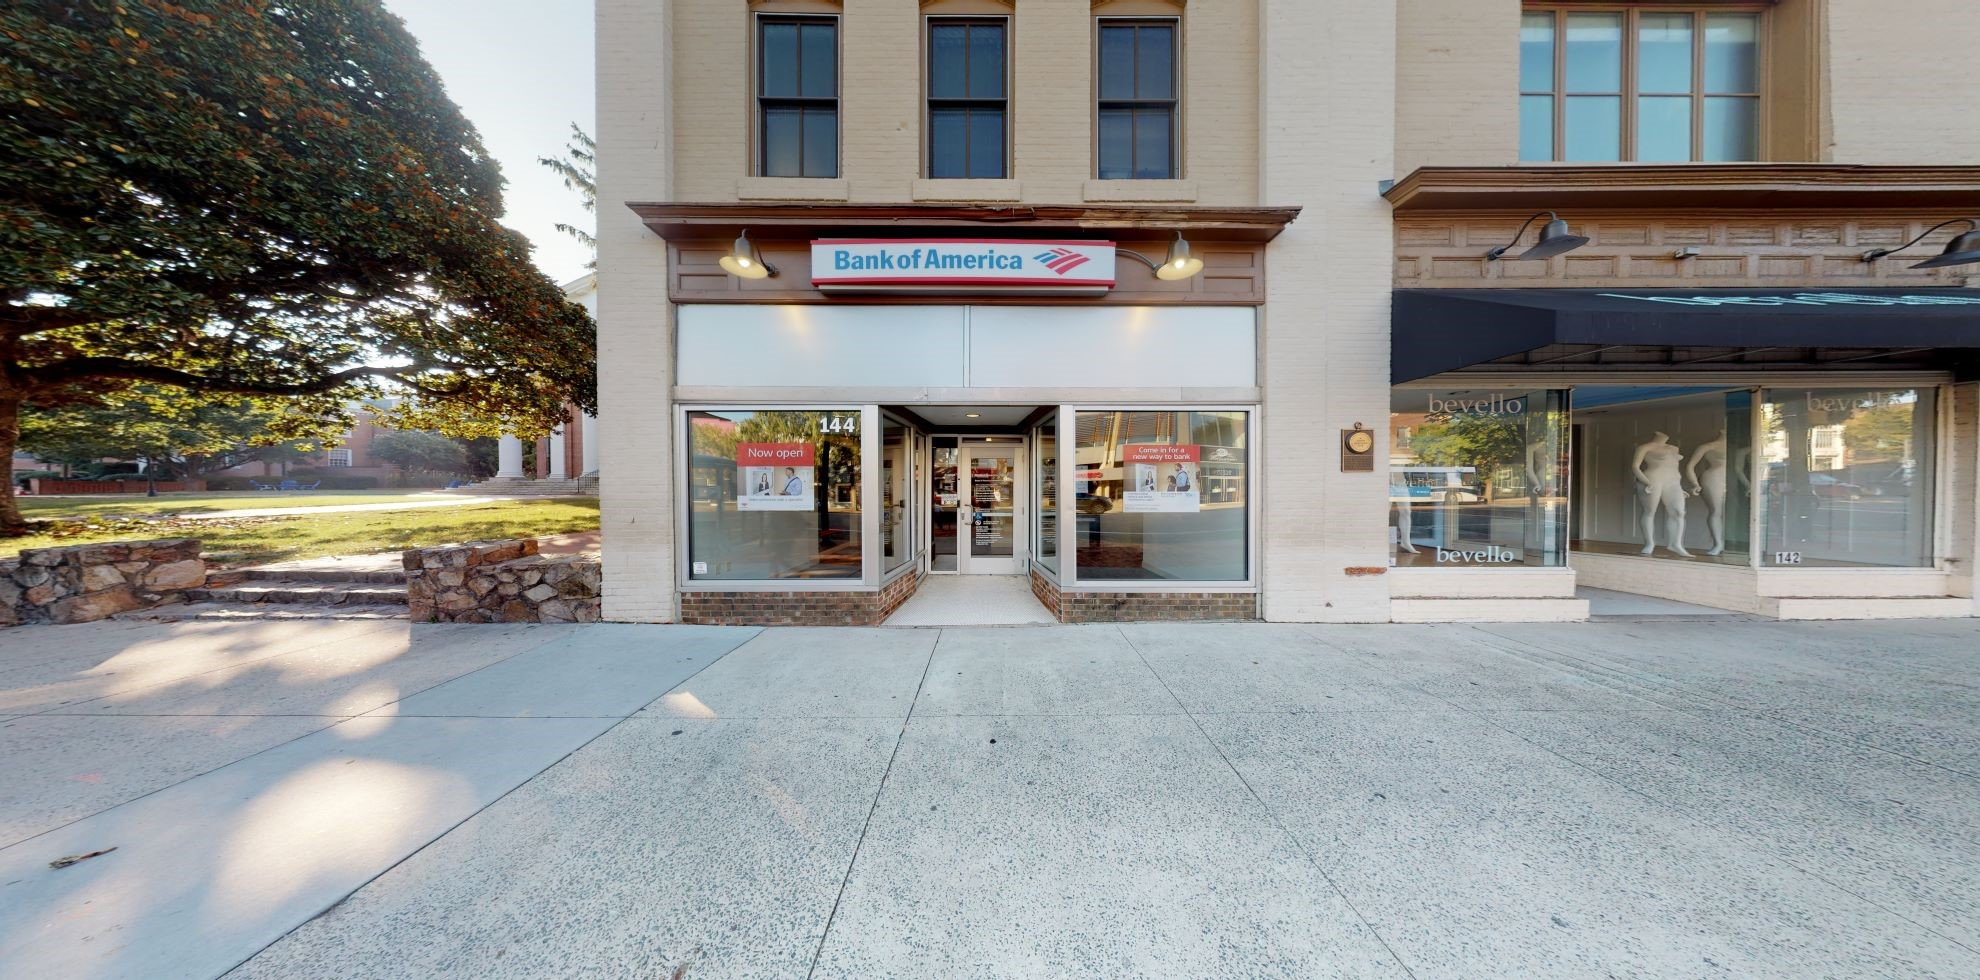 Bank of America Advanced Center with walk-up ATM   144 E Franklin St, Chapel Hill, NC 27514